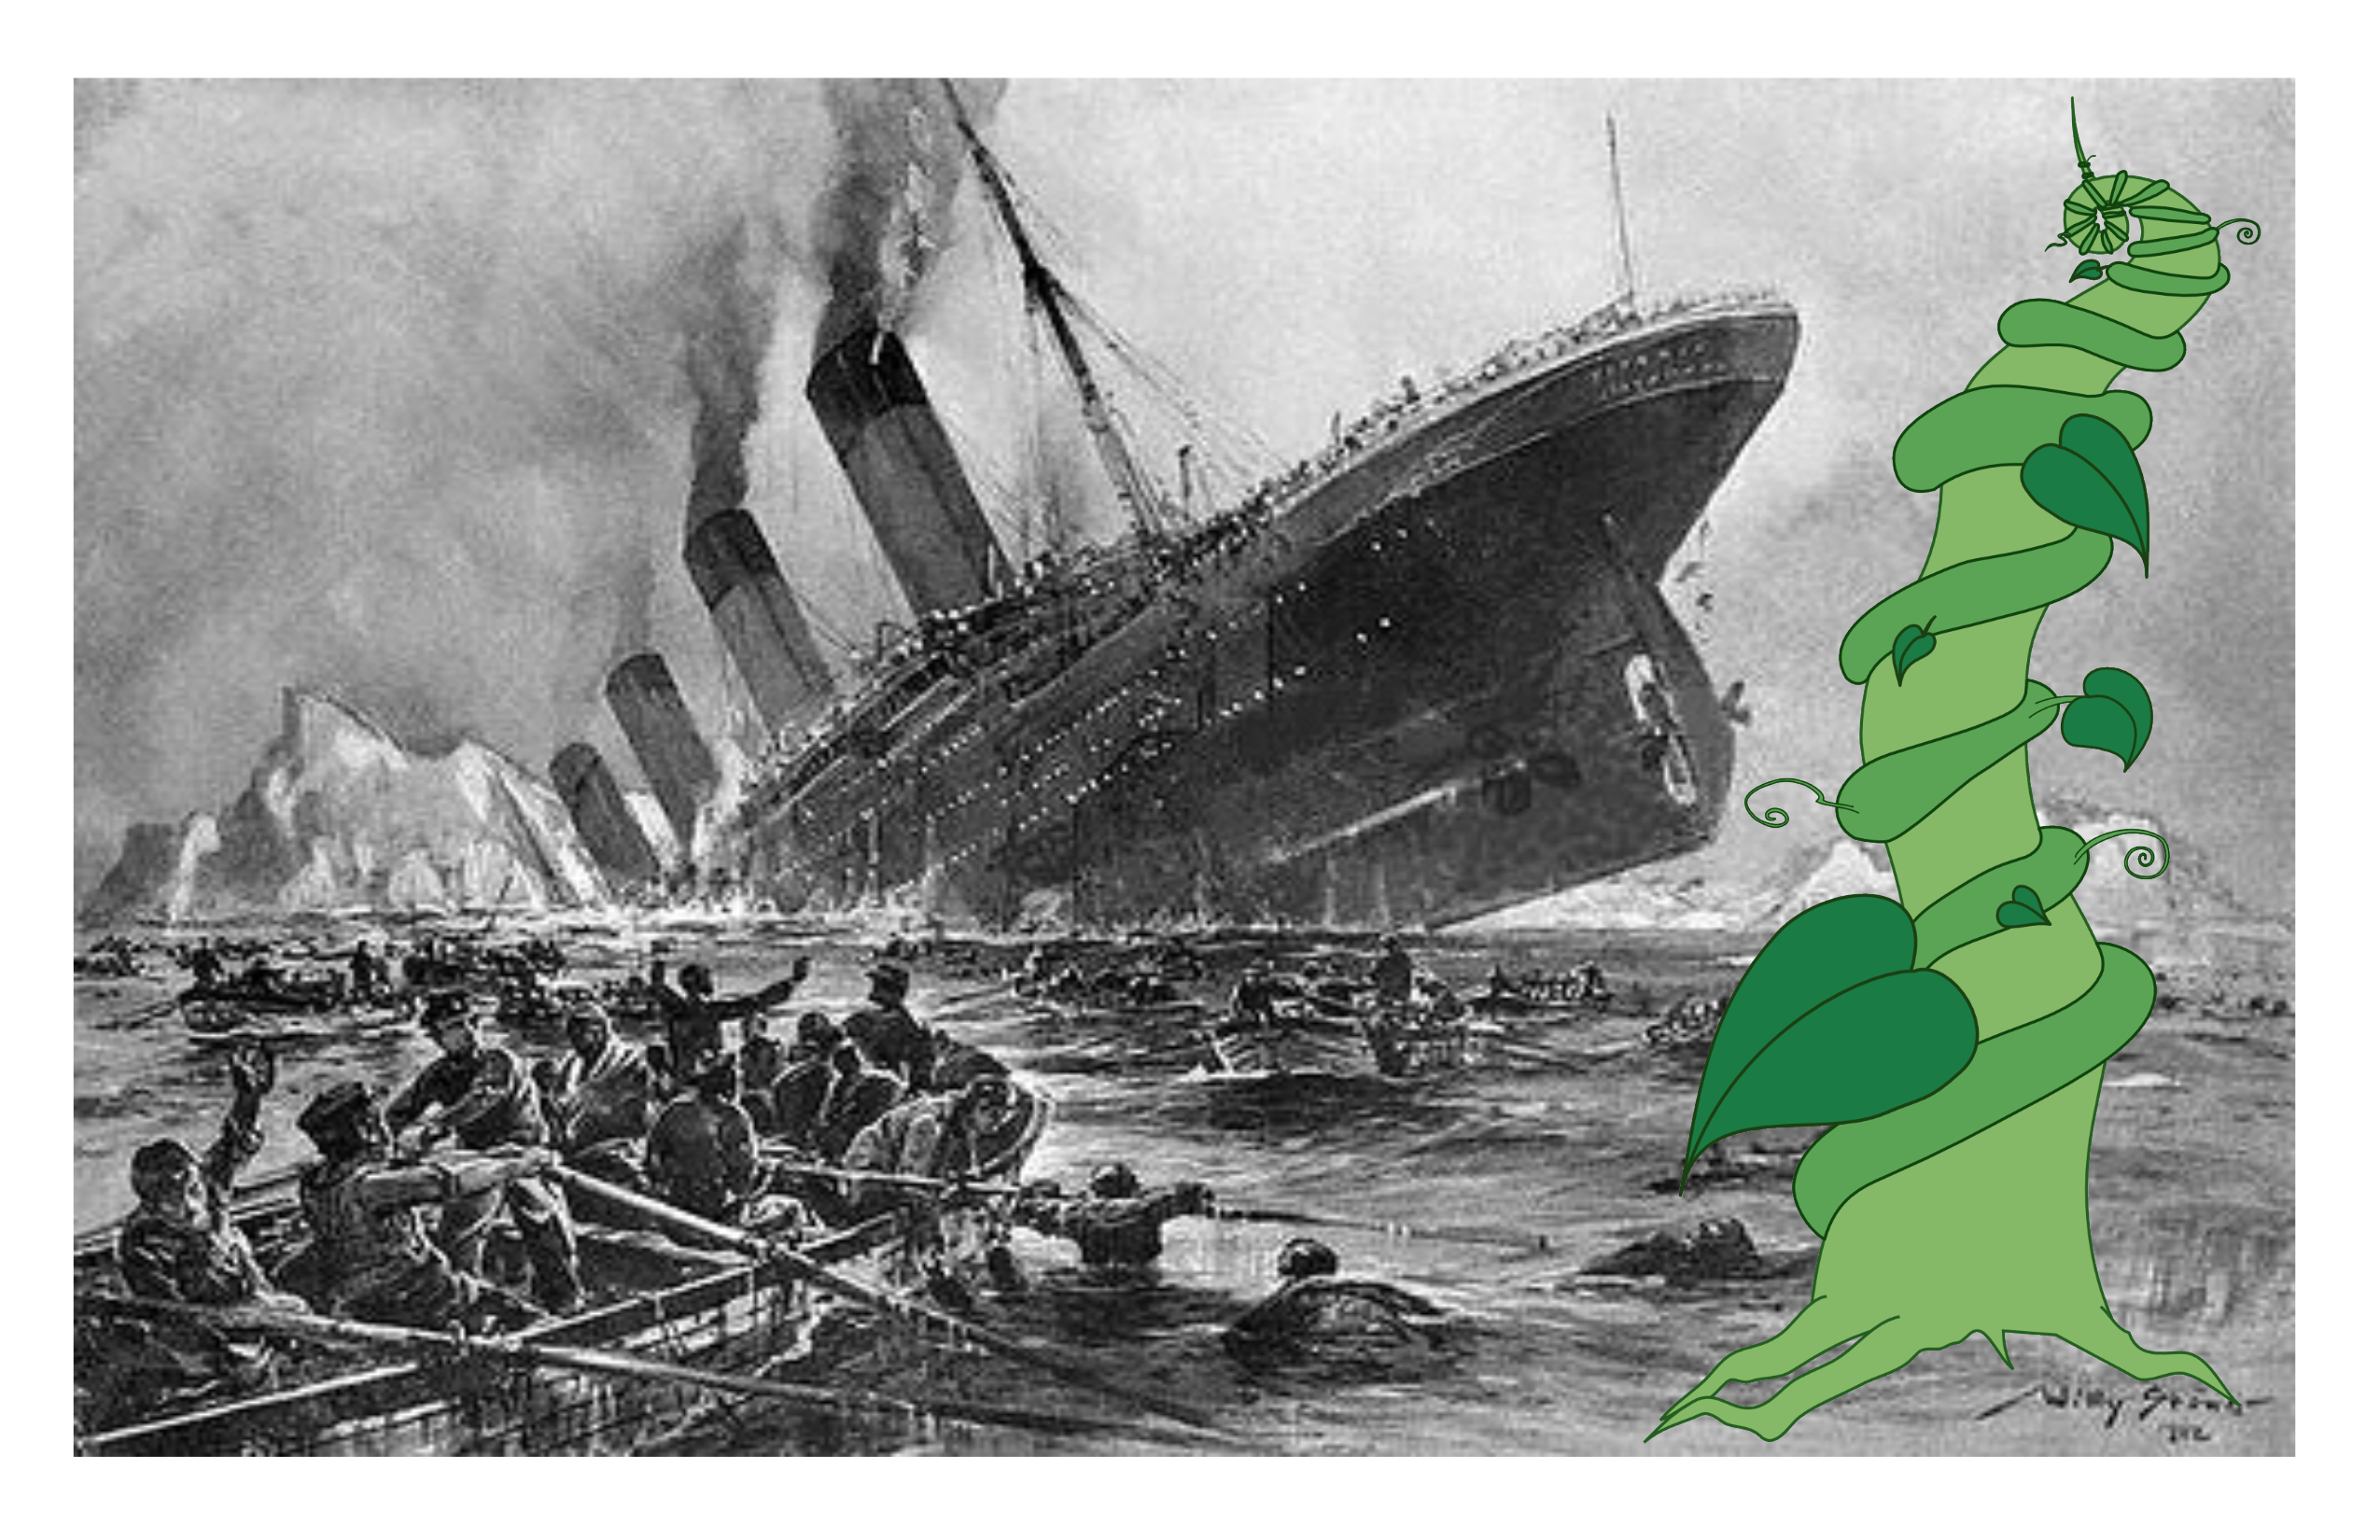 Jack's Beanstalk and Titanic